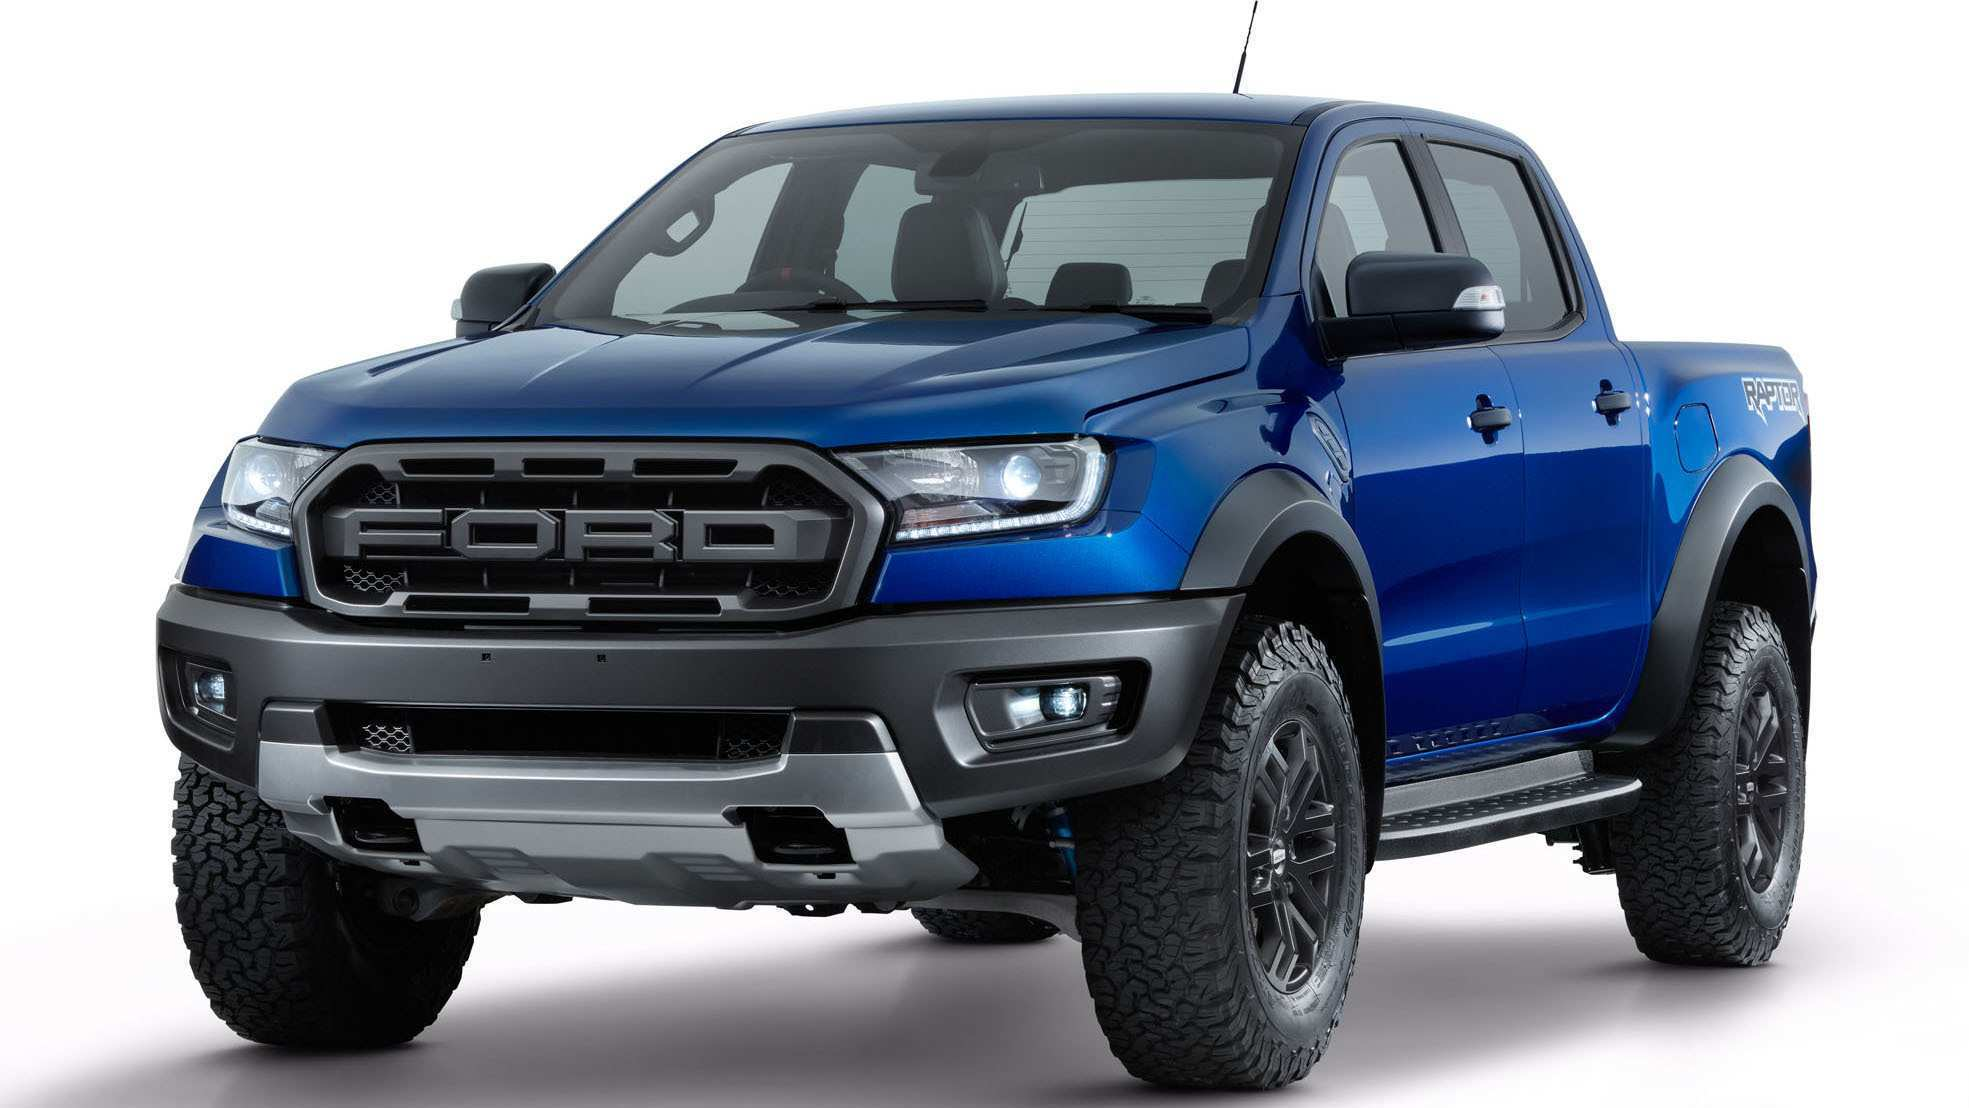 77 Great 2019 Ford Ranger Dimensions Style for 2019 Ford Ranger Dimensions